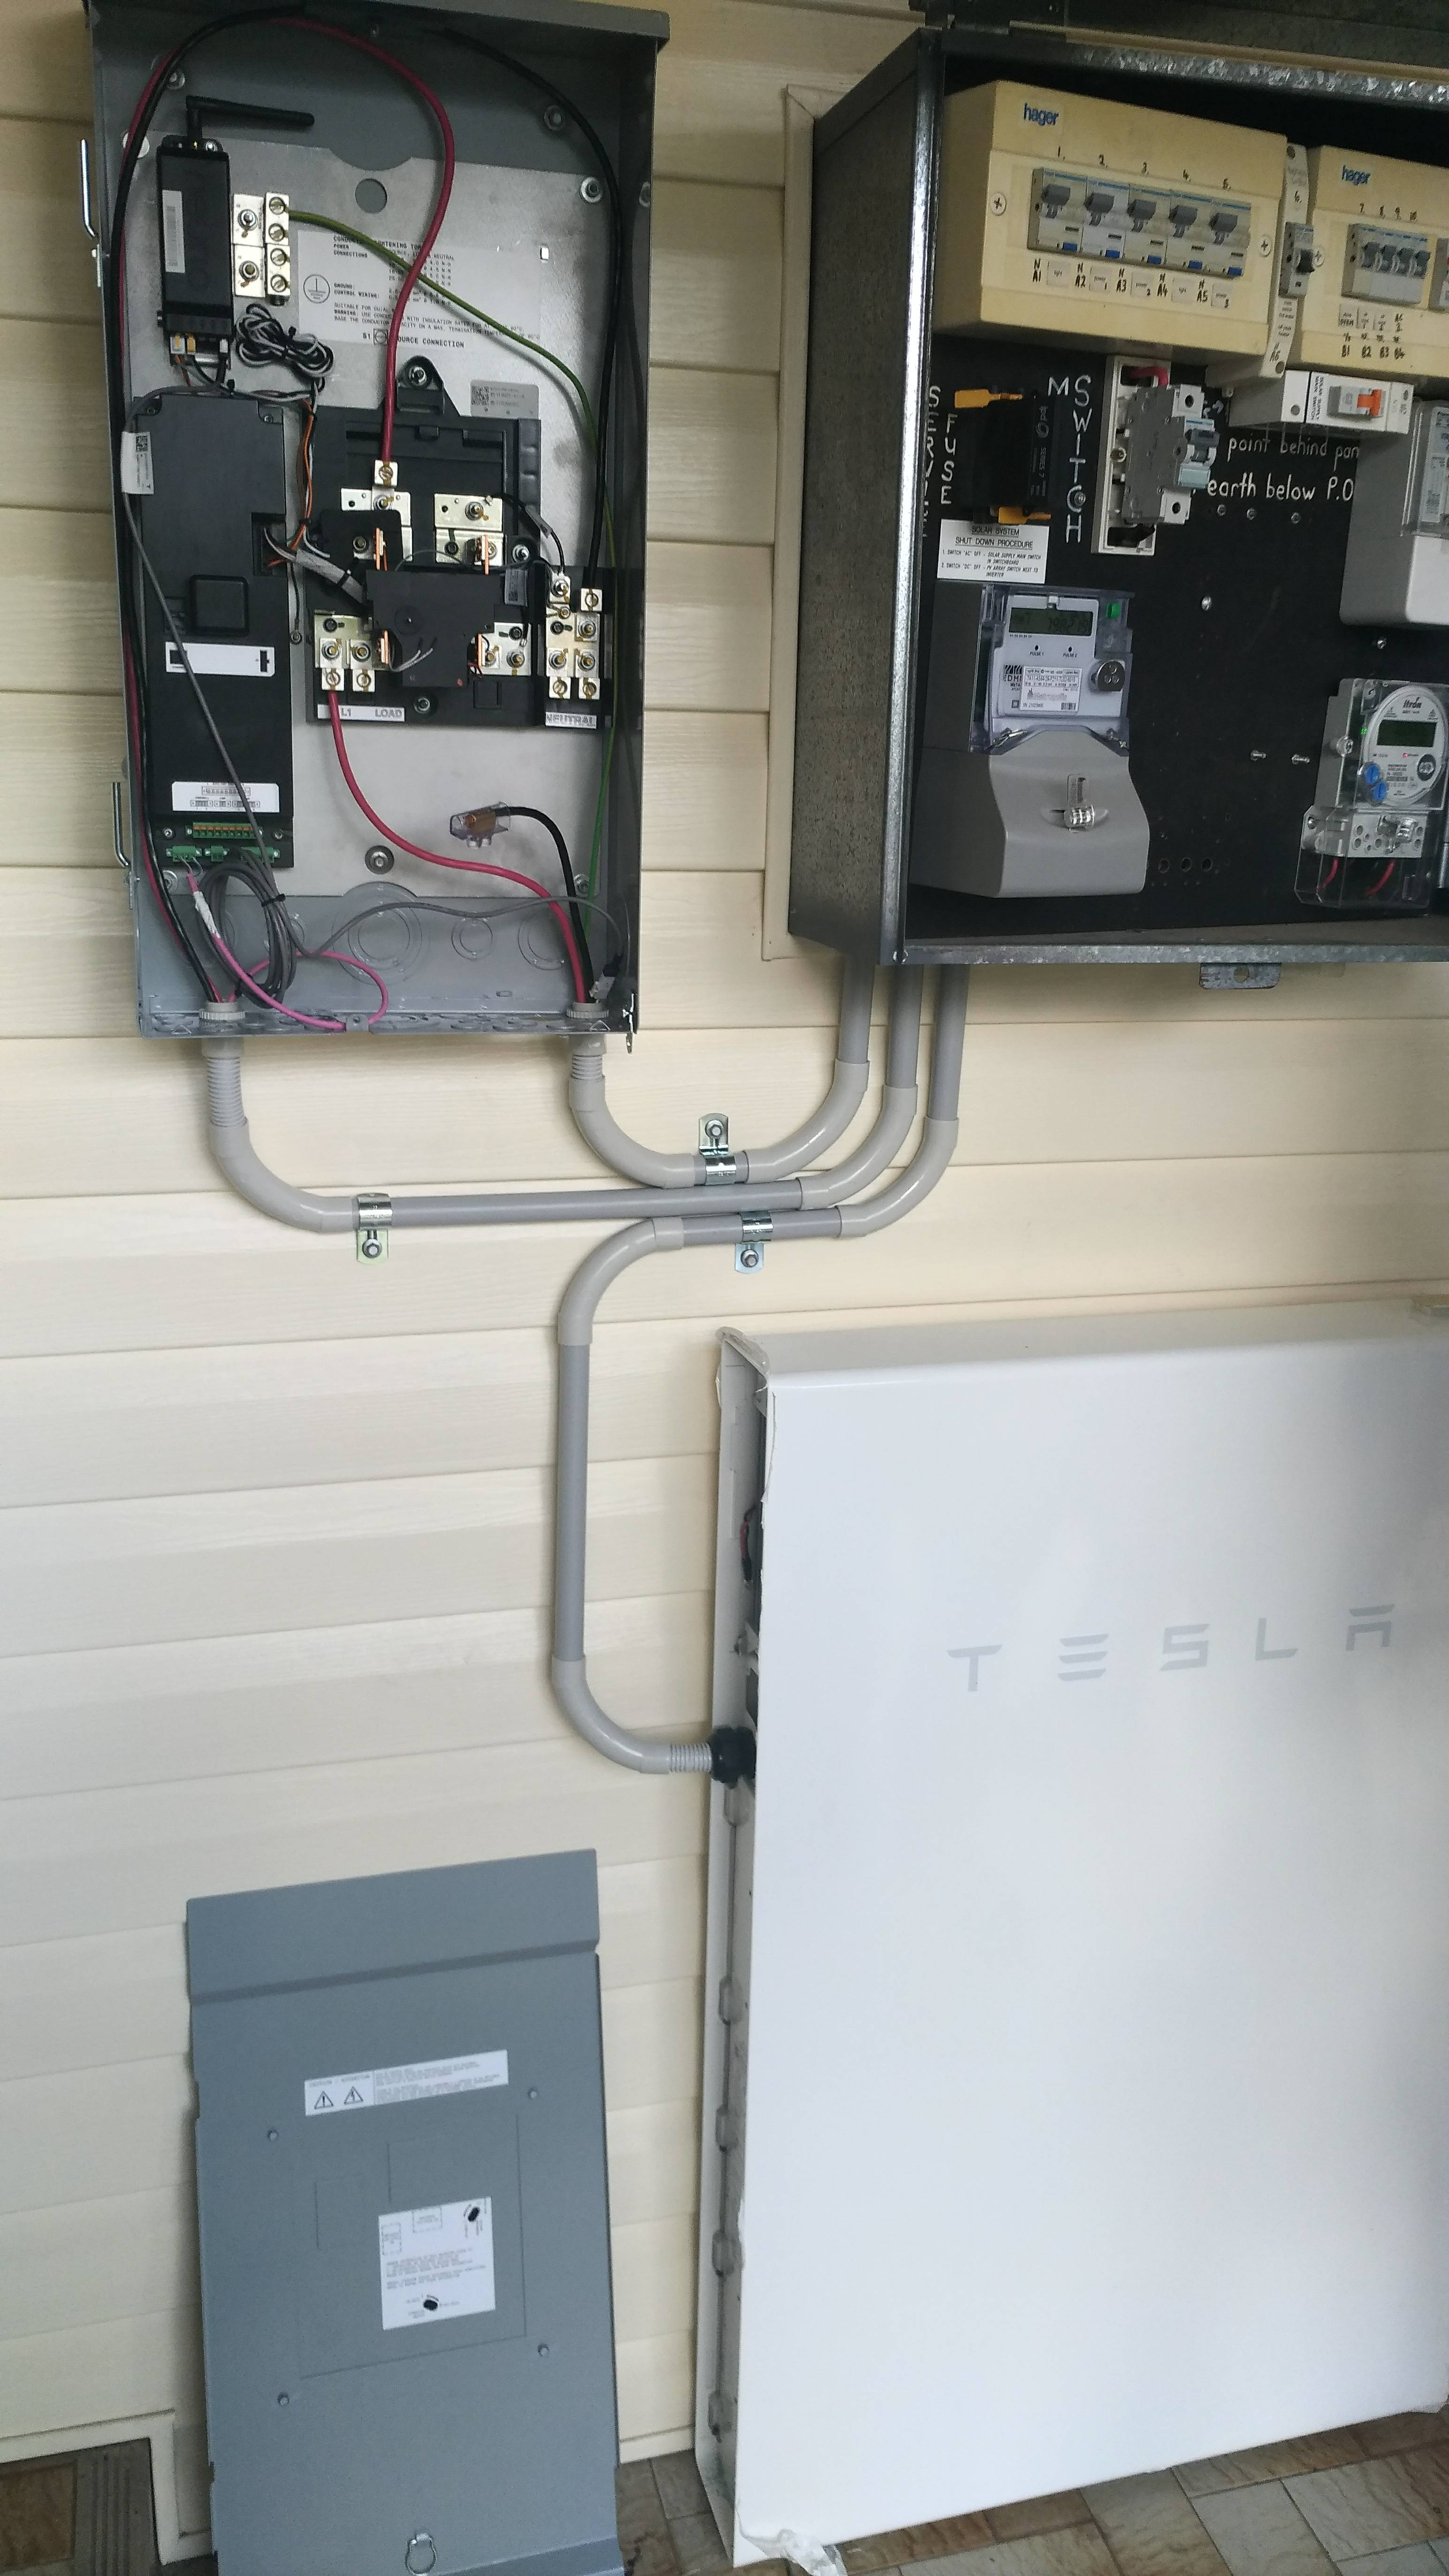 powerwall 2 wiring diagram baldor 3 phase motor tesla starts installations in australia electrek then it was s turned to activate the device